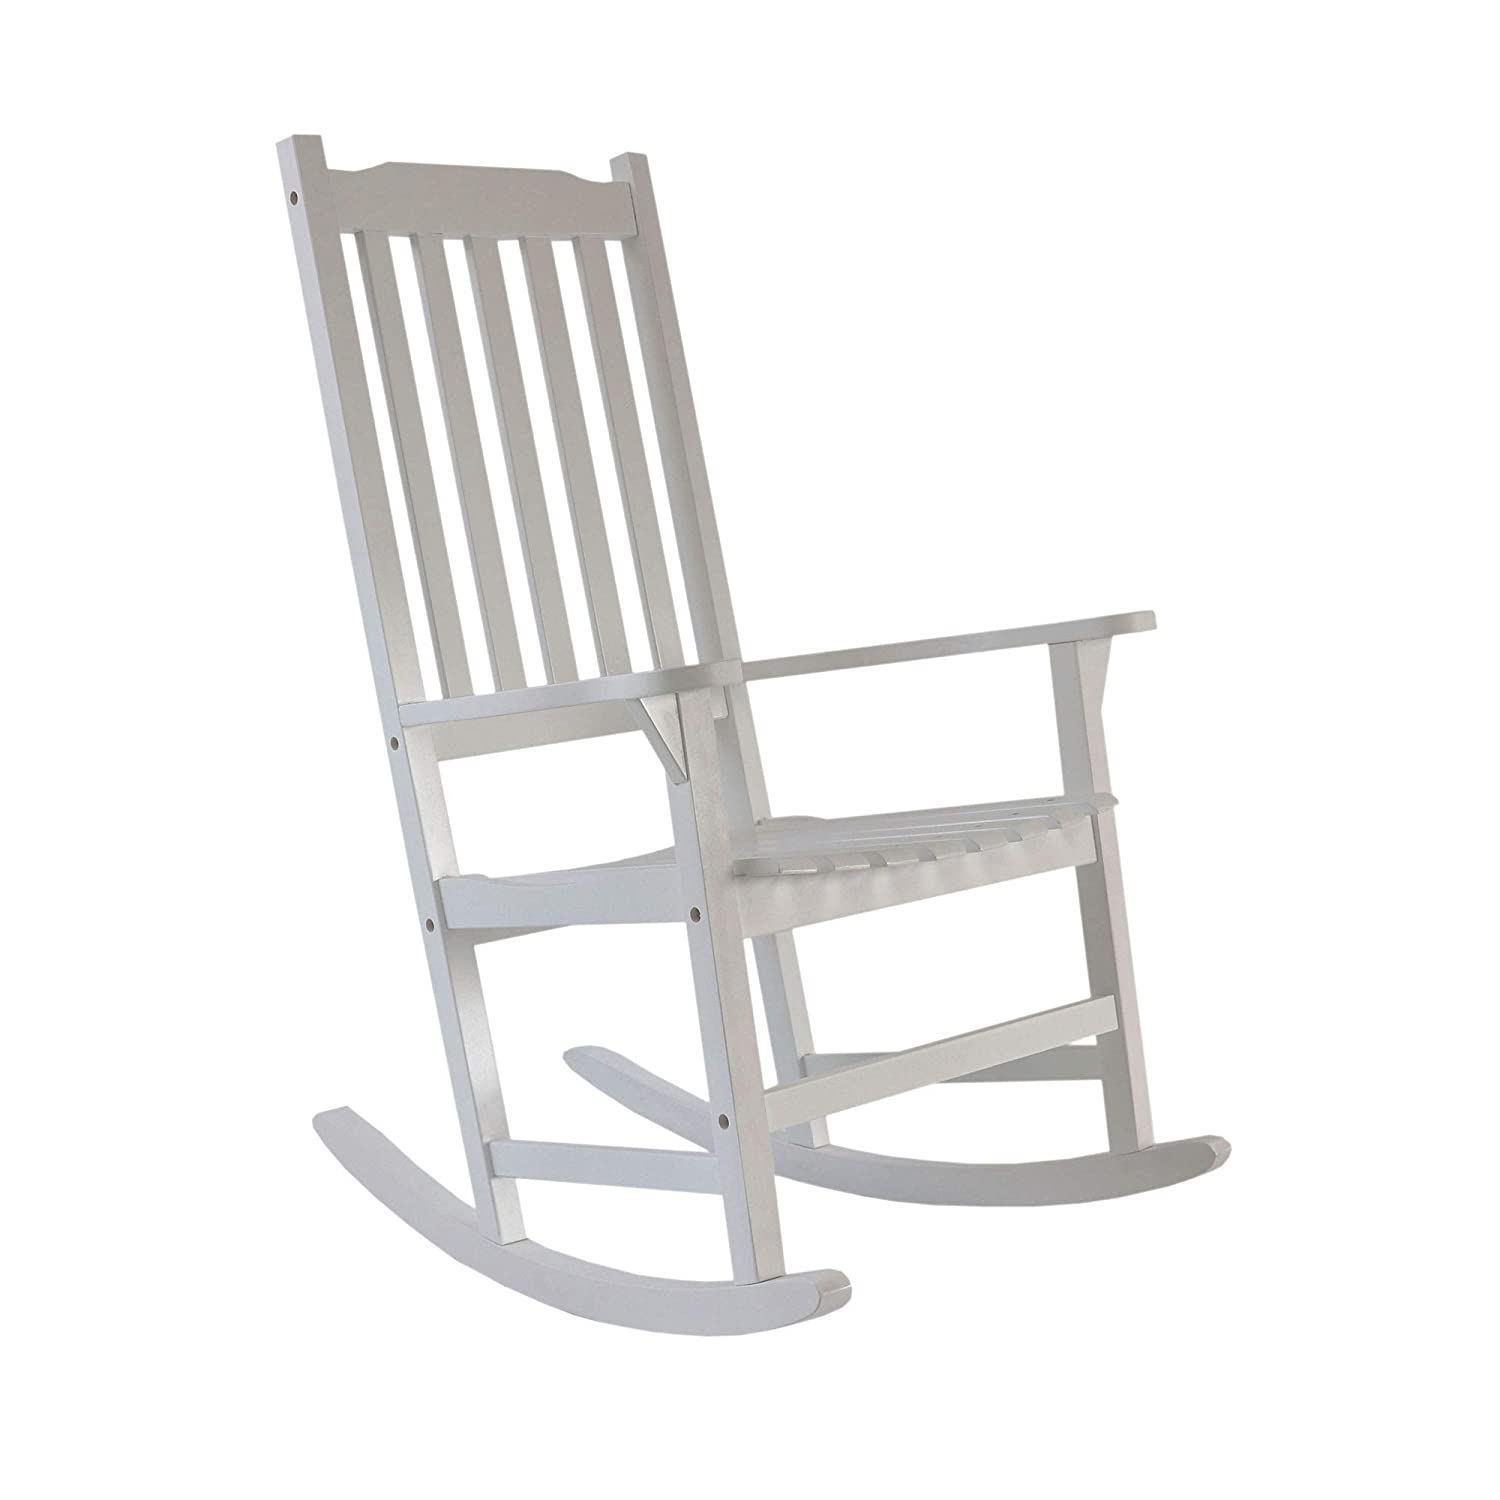 Merax Rocking Chair Solid Wood Indoor Outdoor Rocking Chair for Patio, Yard, Porch, Garden, Backyard, Balcony, White